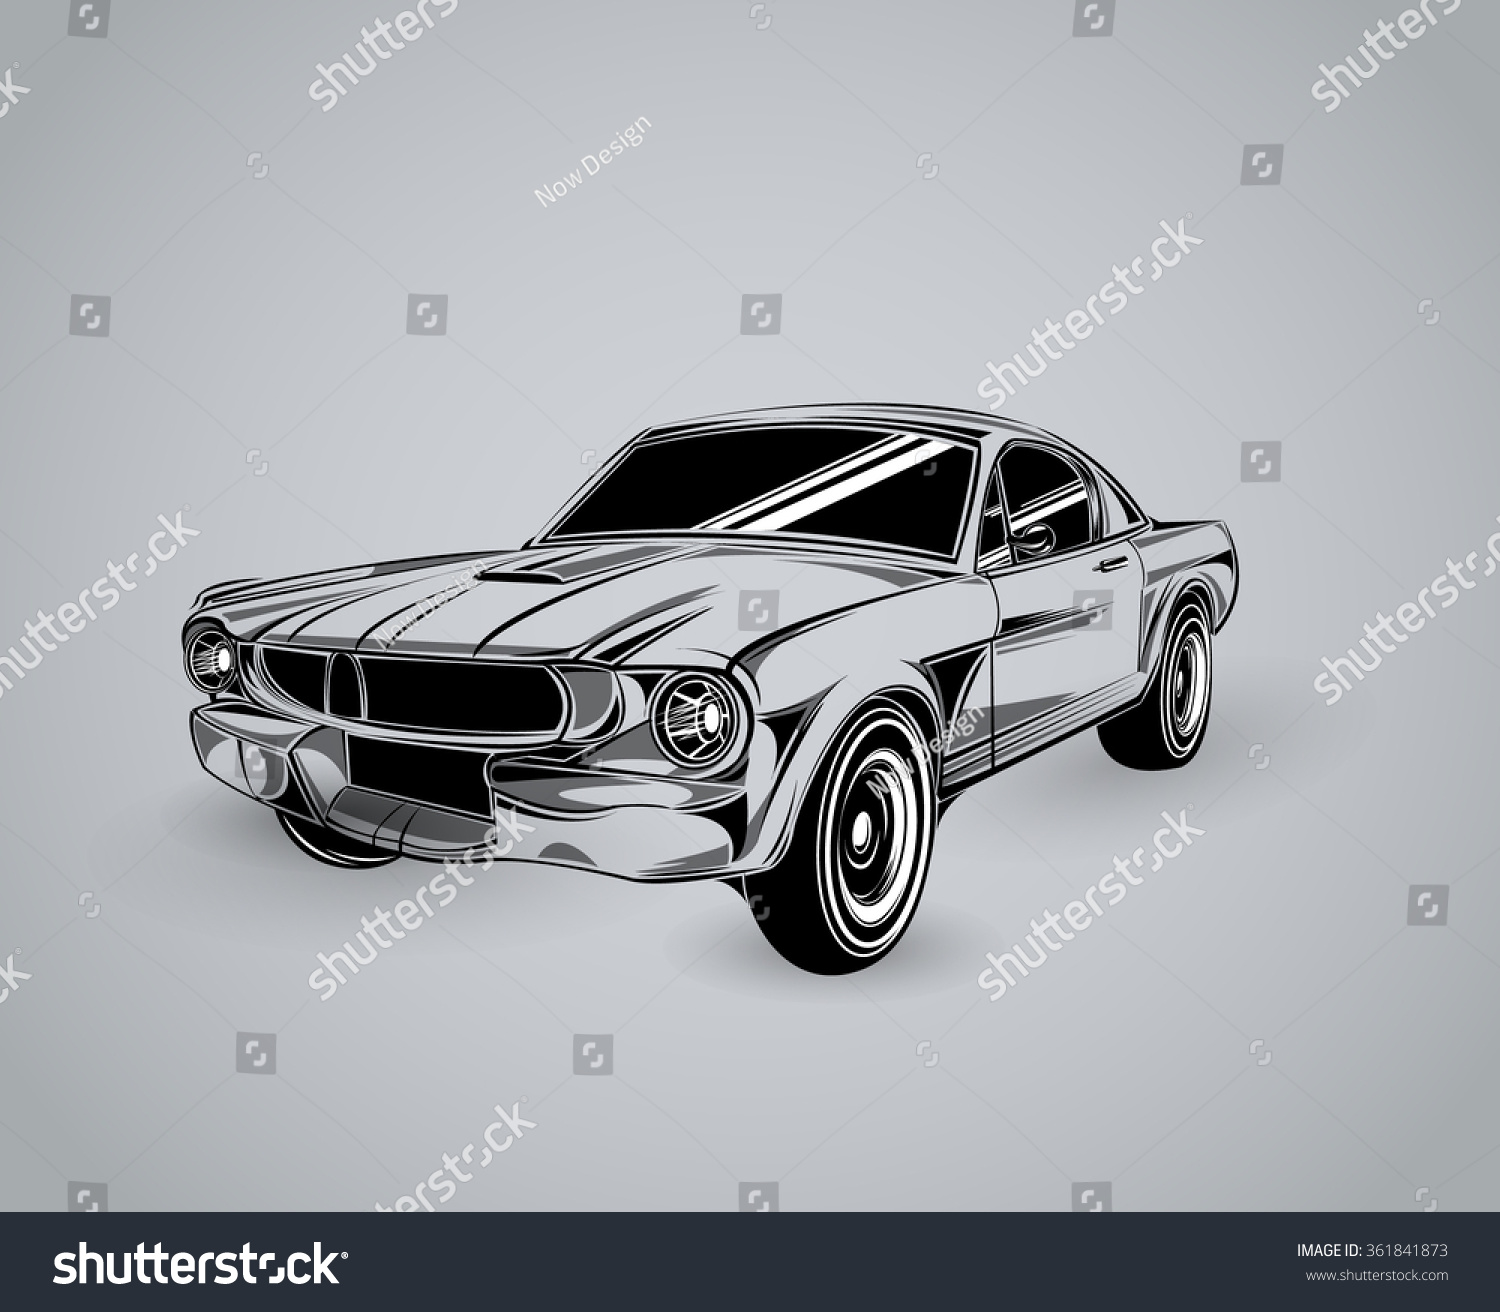 Vintage American Muscle Car Vector Silhouette Stock Vector ...